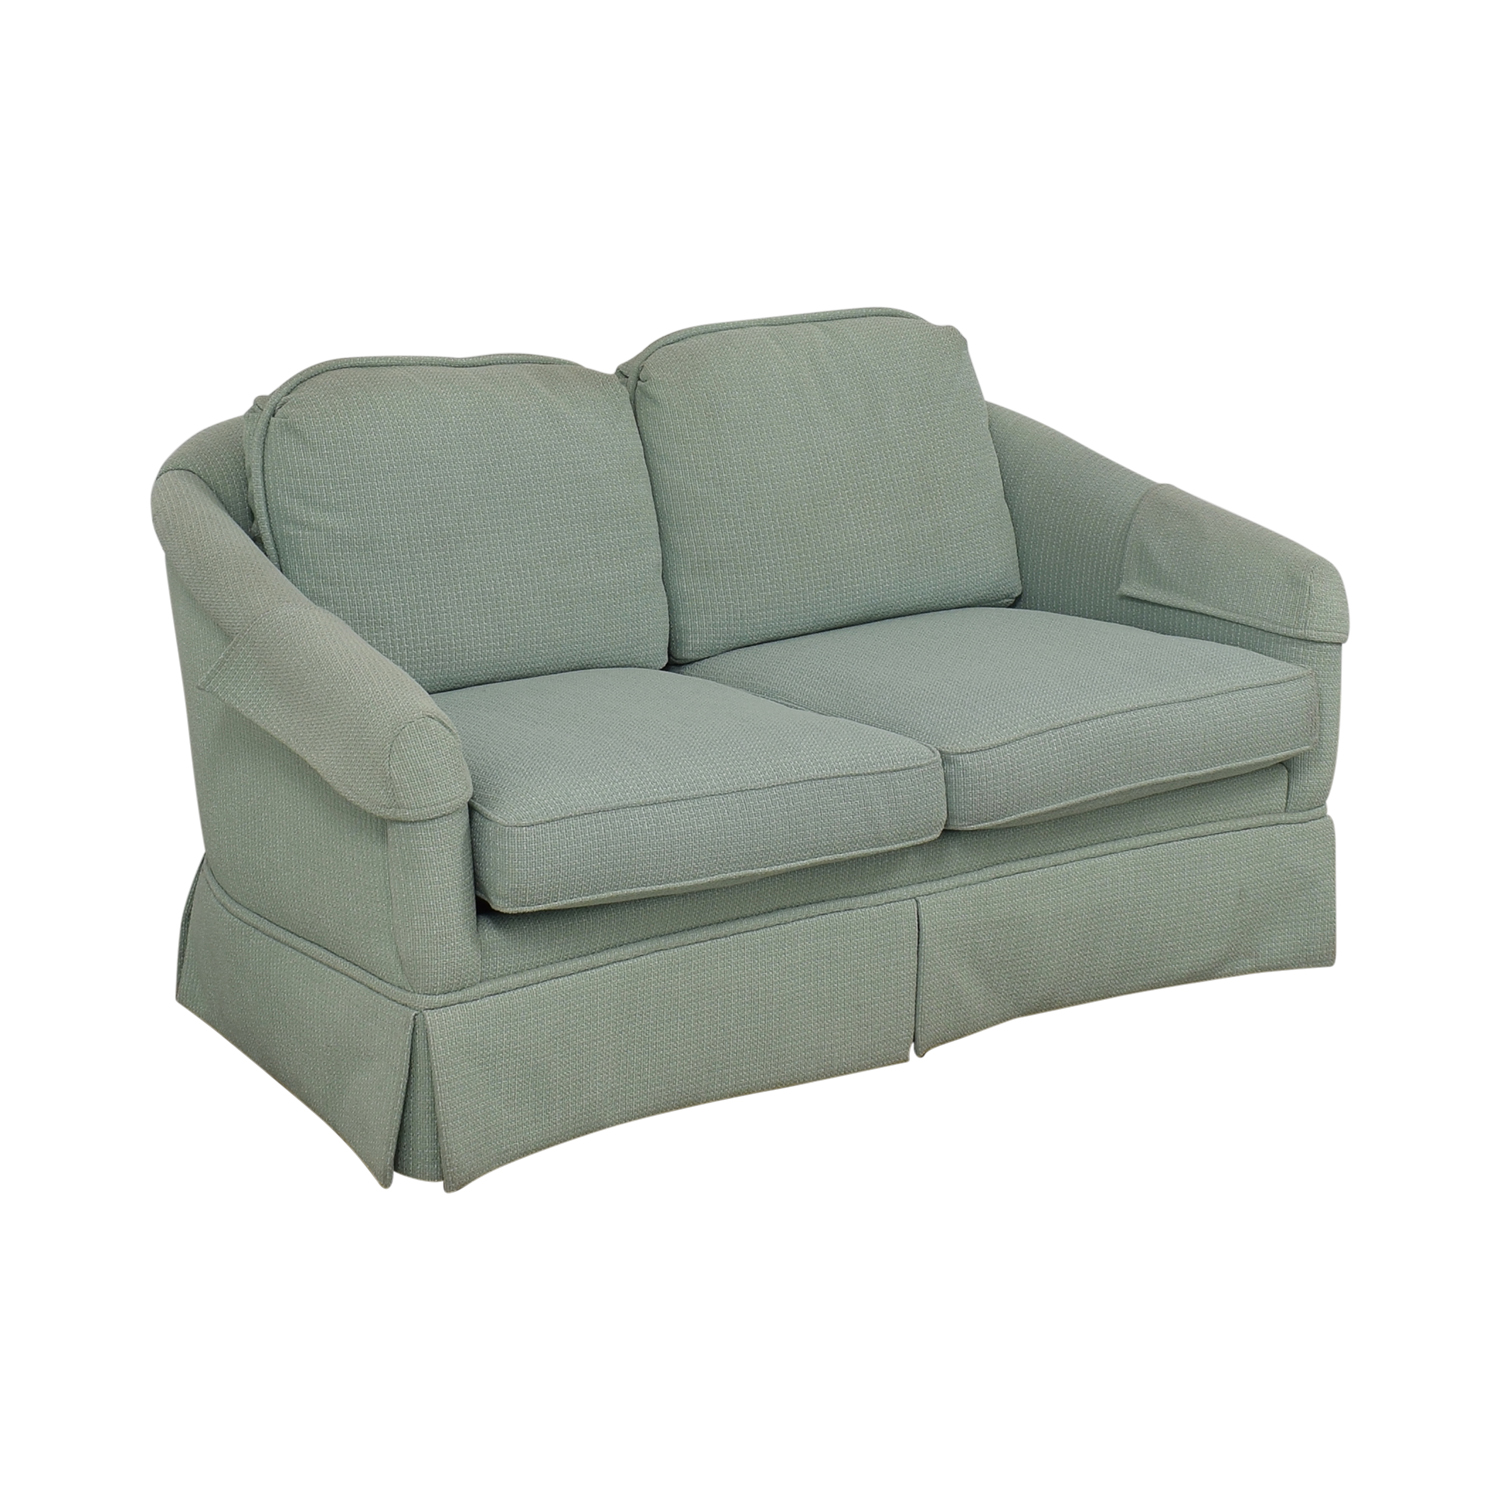 Hickory Chair Hickory Chair Two Cushion Loveseat blue